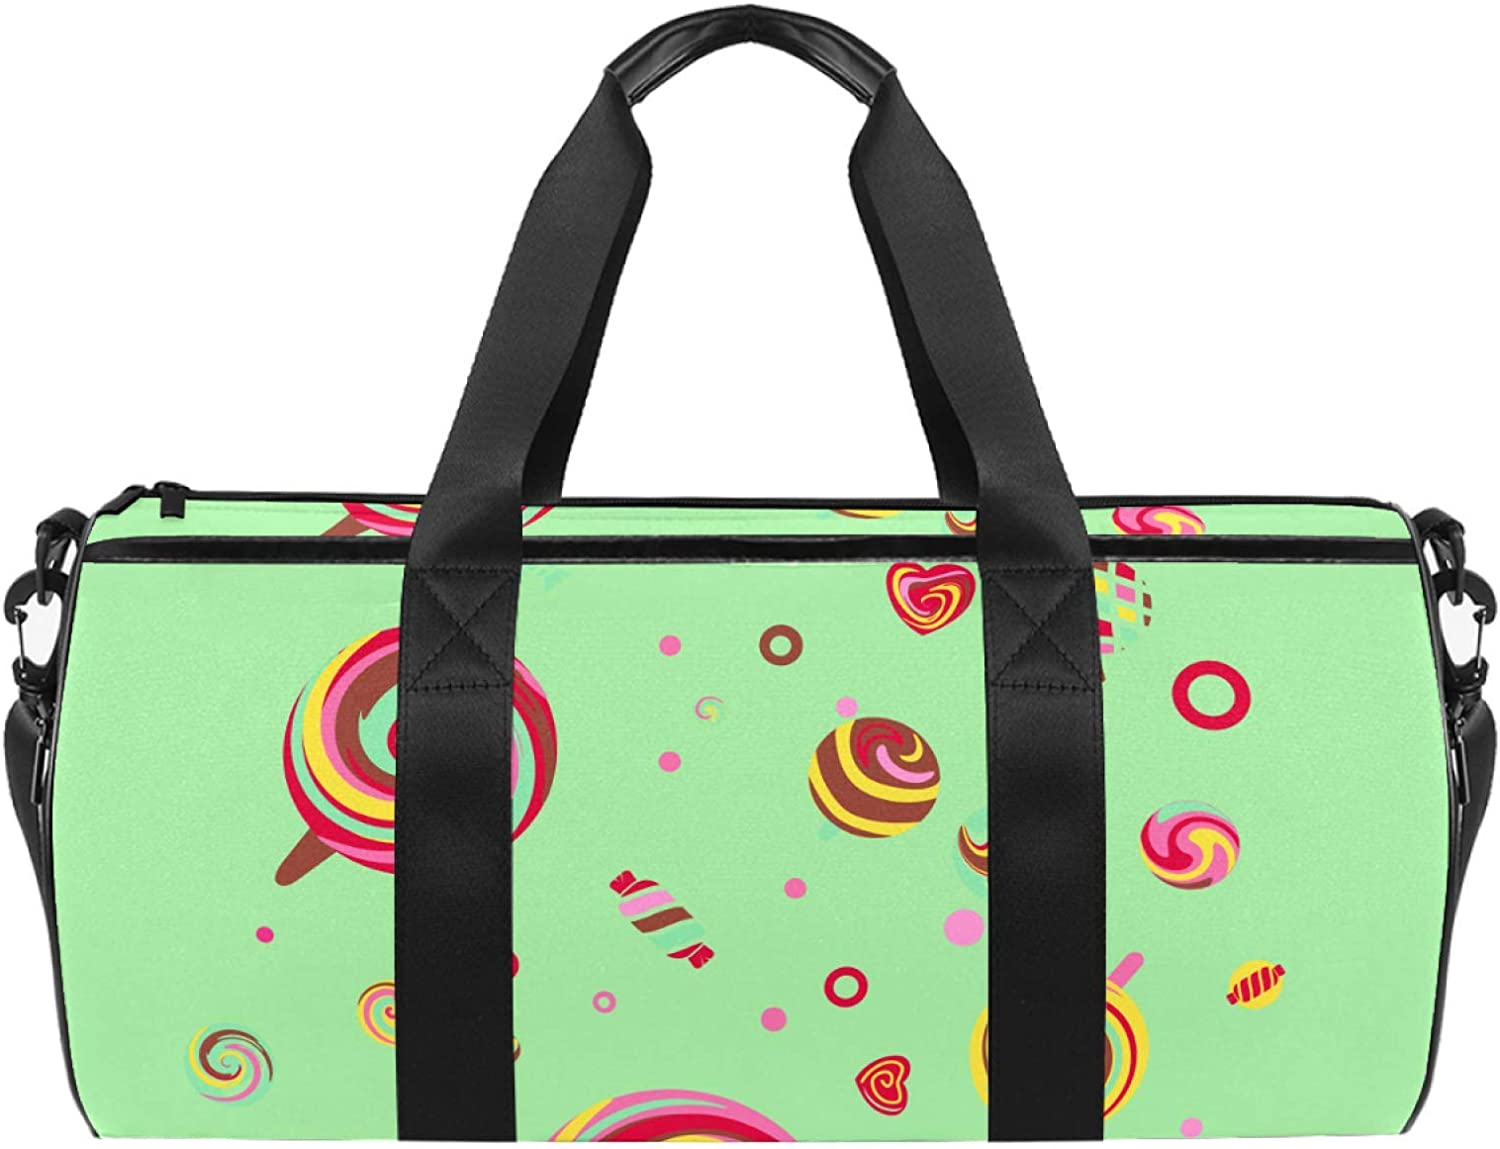 Shoulder Handy Sports Gym Bags Travel Totes Men Bag Duffle Sale for W We OFFer at cheap prices